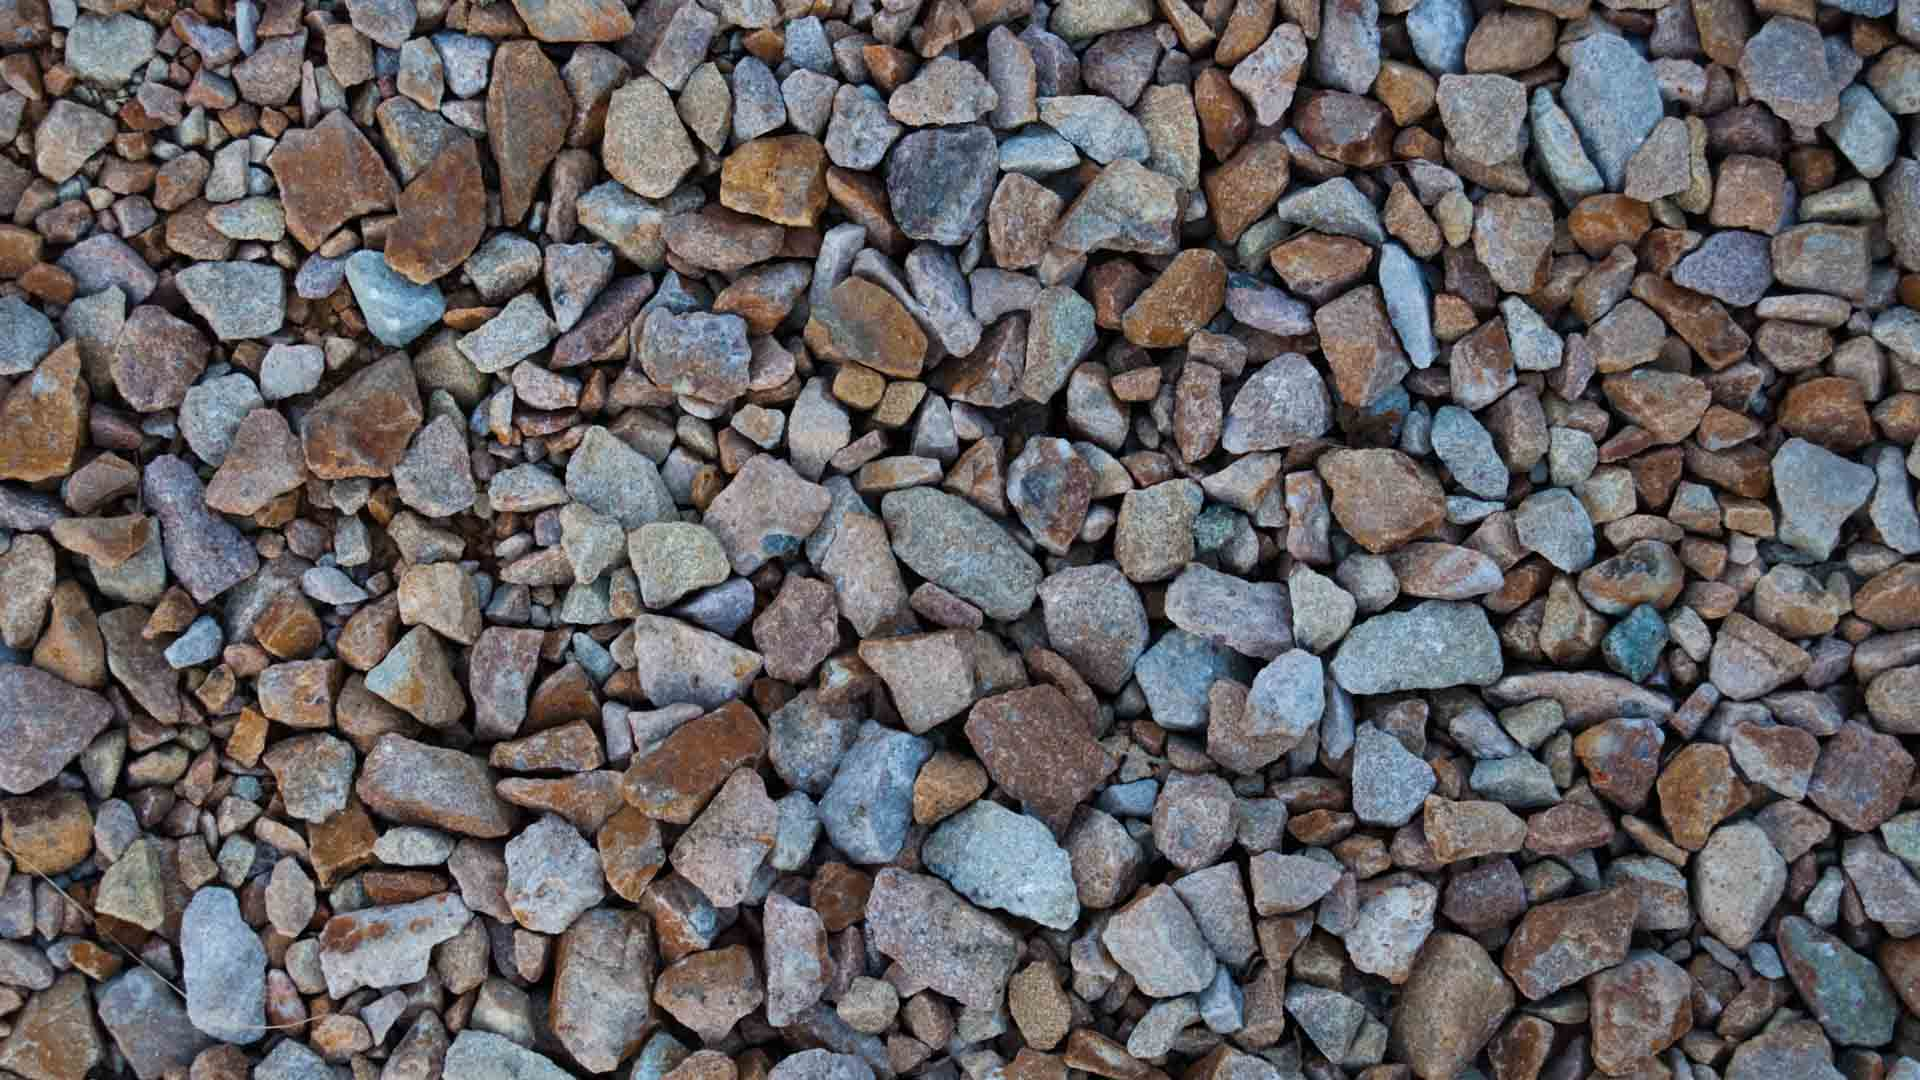 Landscape rocks close up.